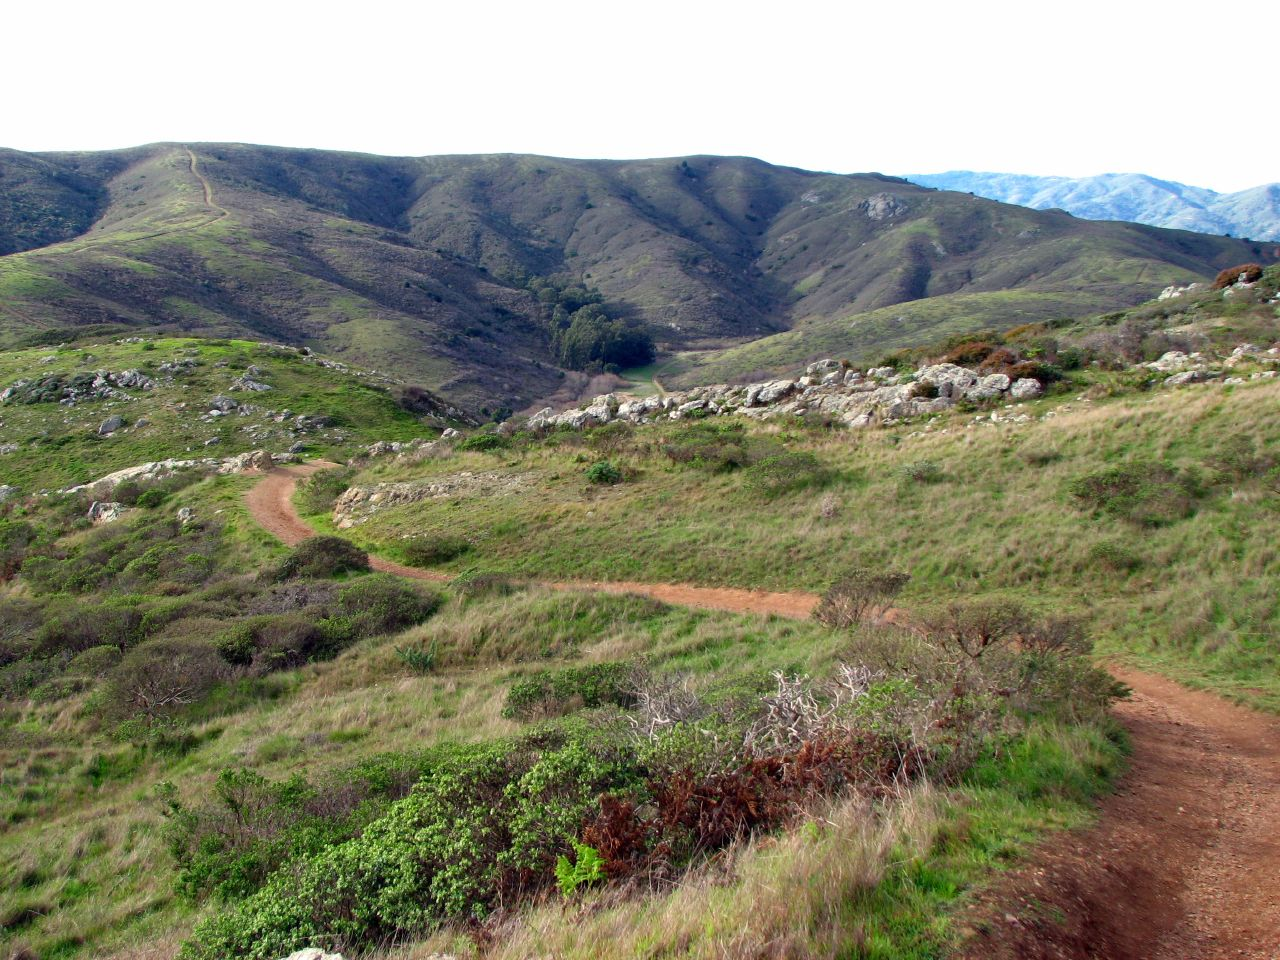 The Old Spring Trail in Marin Headlands   © David Berry_Flickr